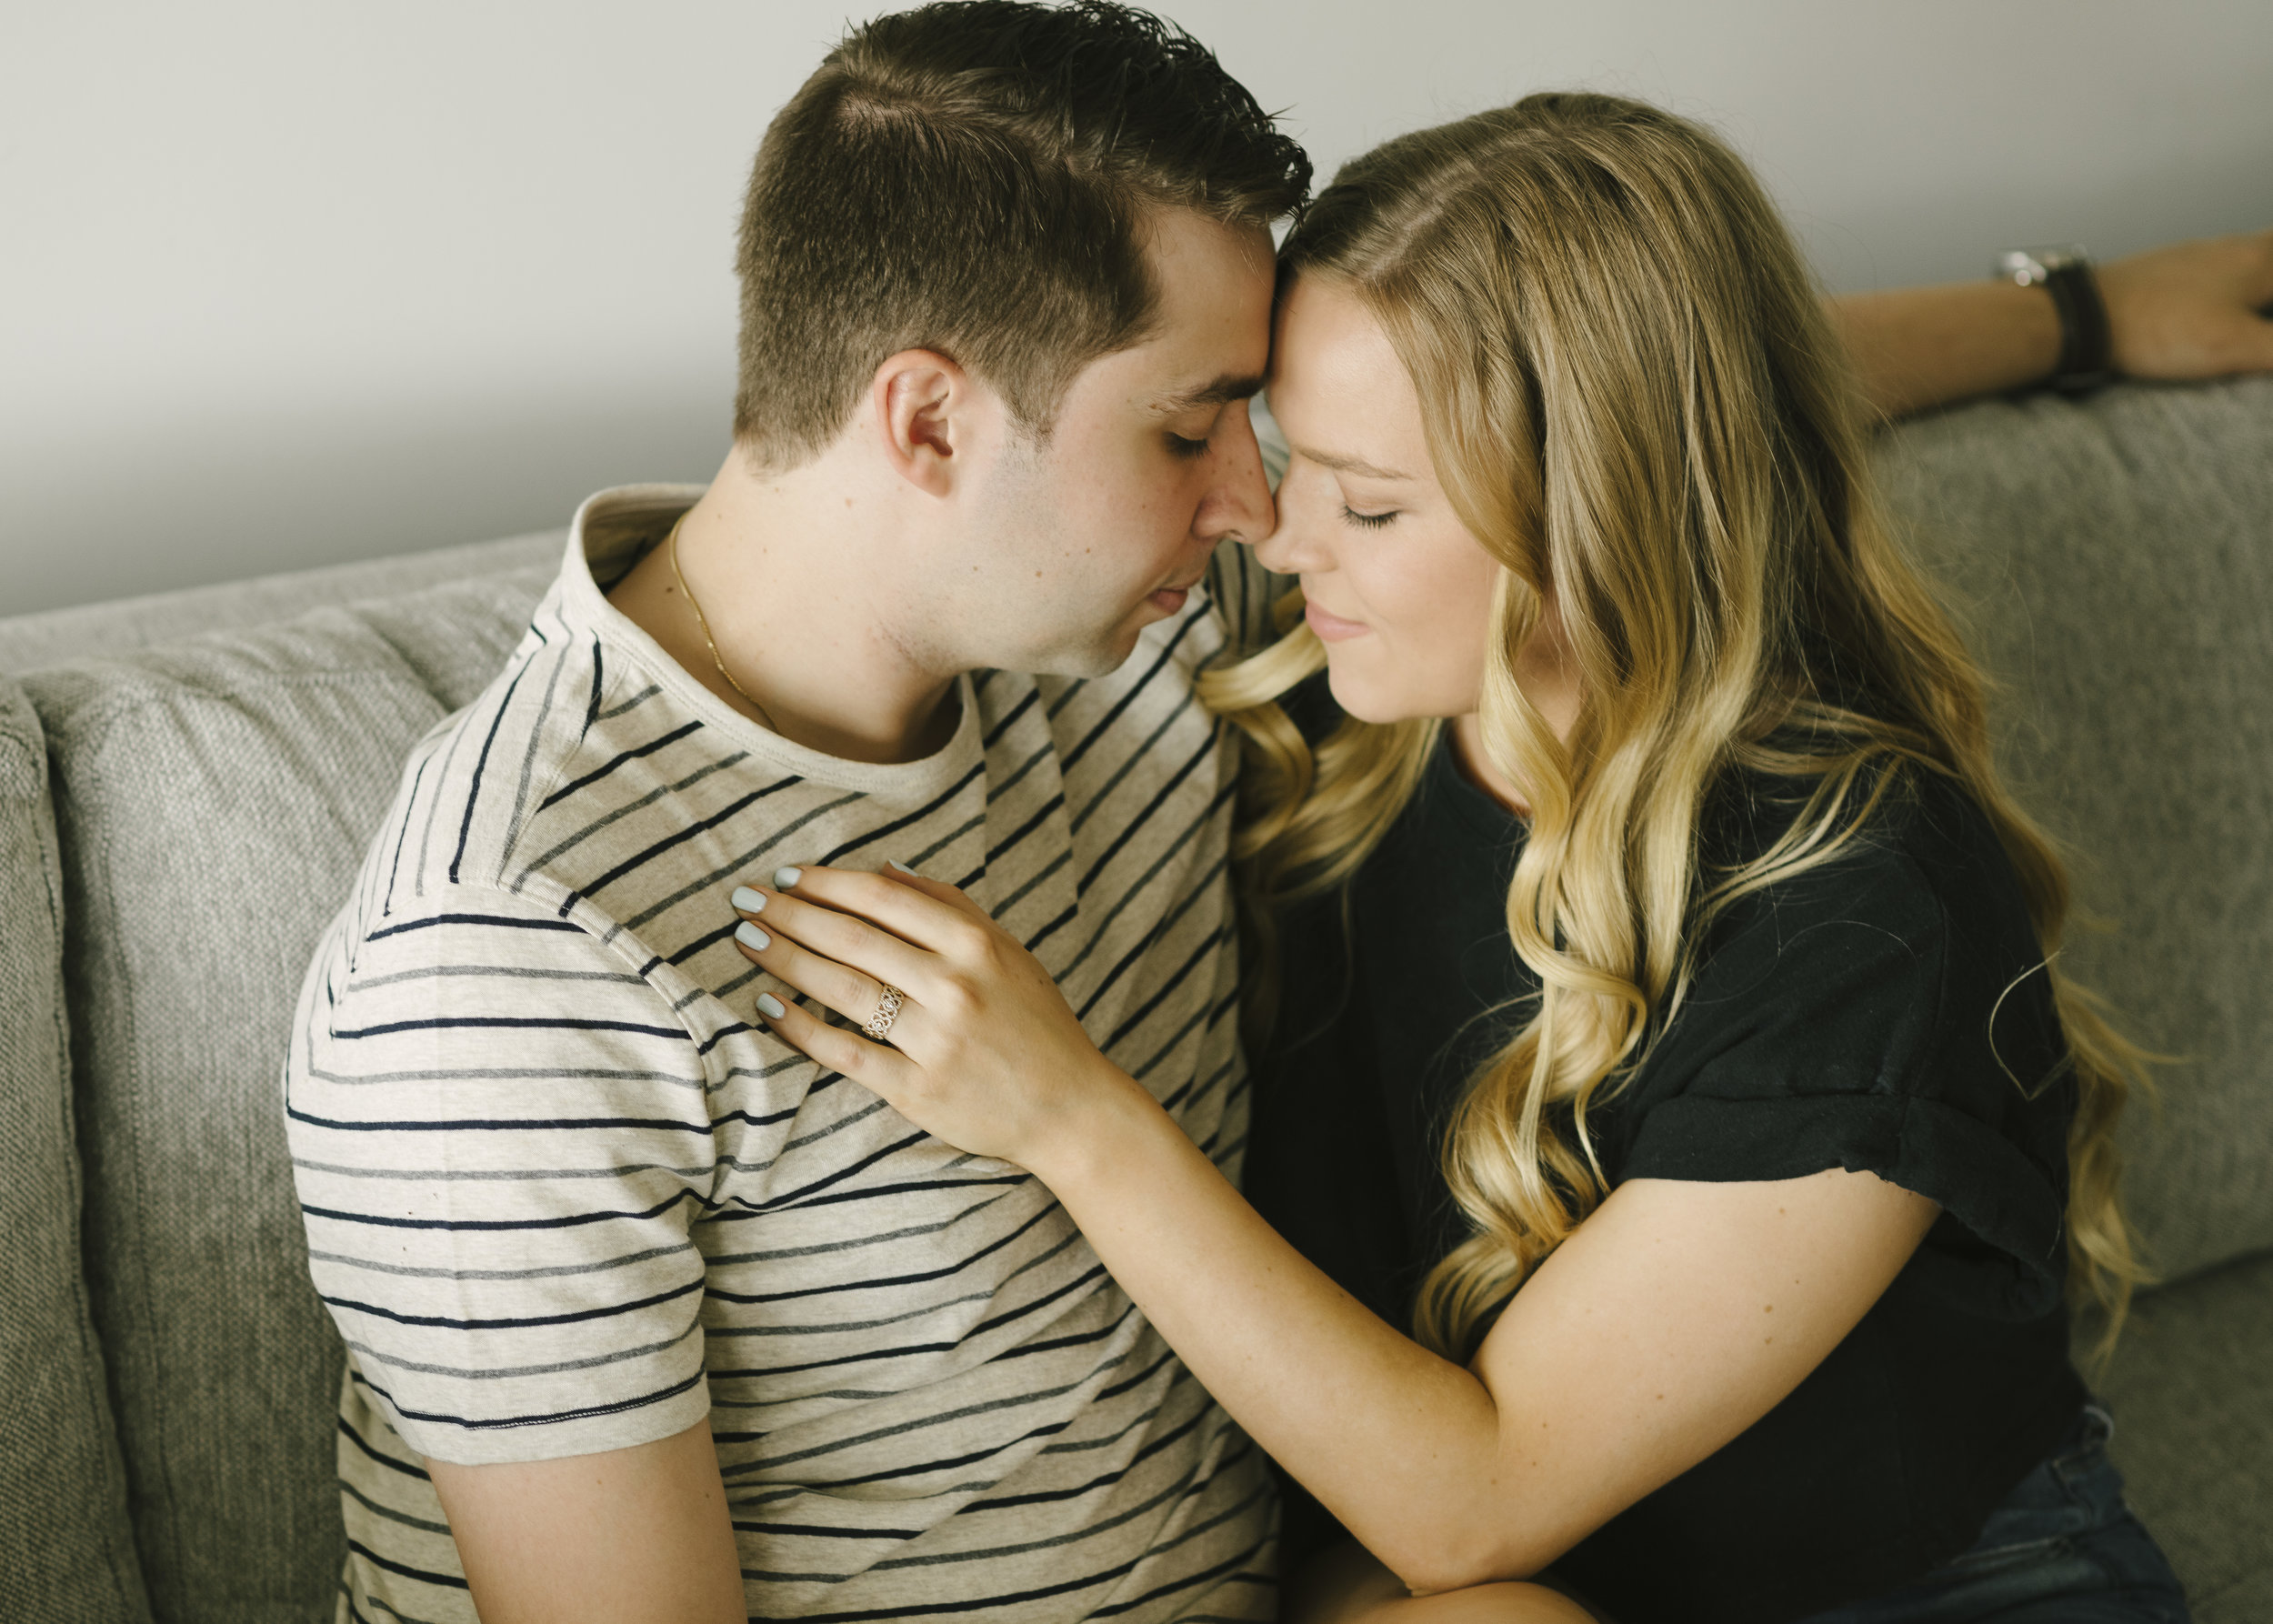 Anthony & Julia engagement session - gallery-99.jpg